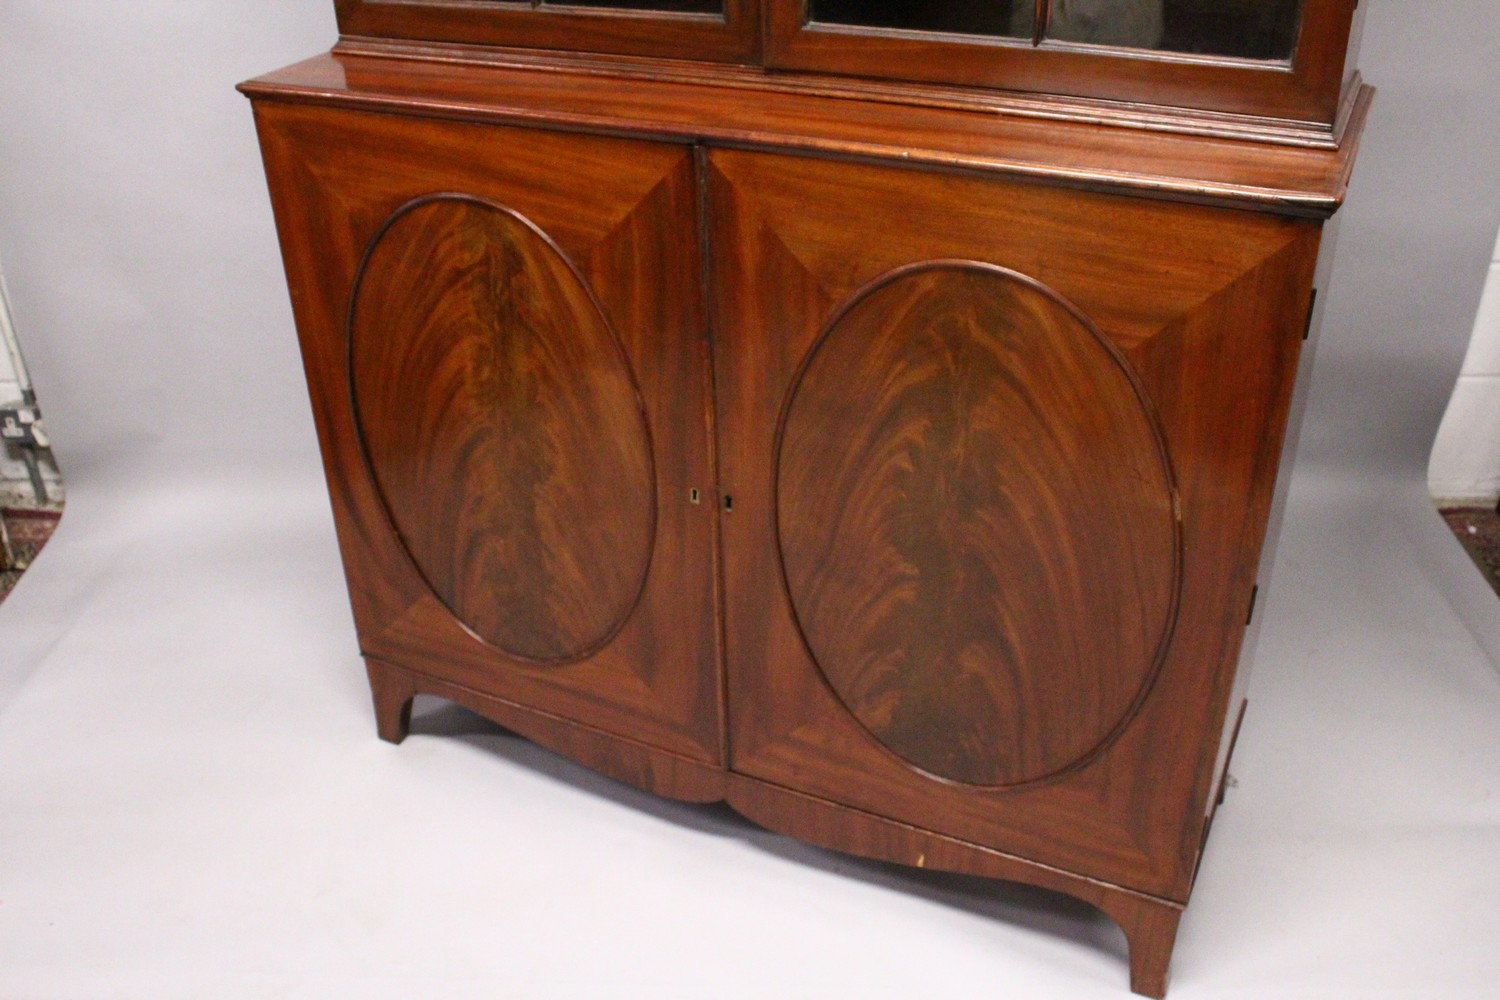 A GEORGE III DESIGN MAHOGANY CUPBOARD BOOKCASE, 19TH CENTURY, with a moulded cornice, pair of - Image 5 of 10